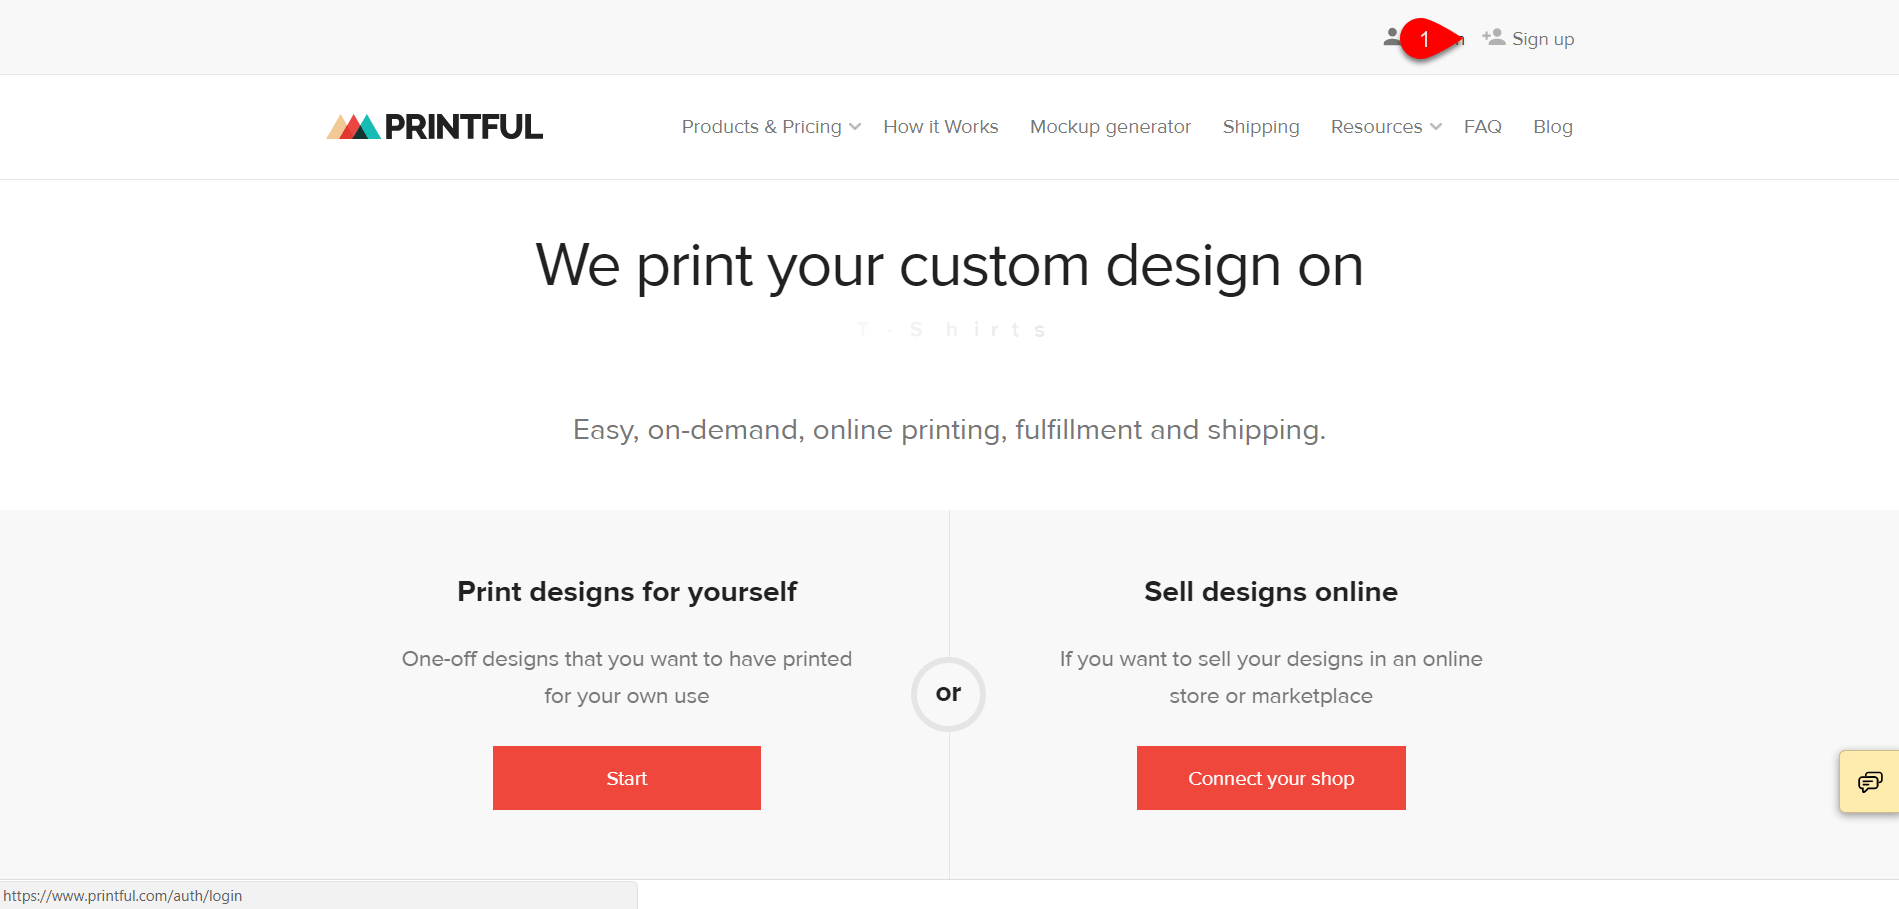 Creating Account with Printful